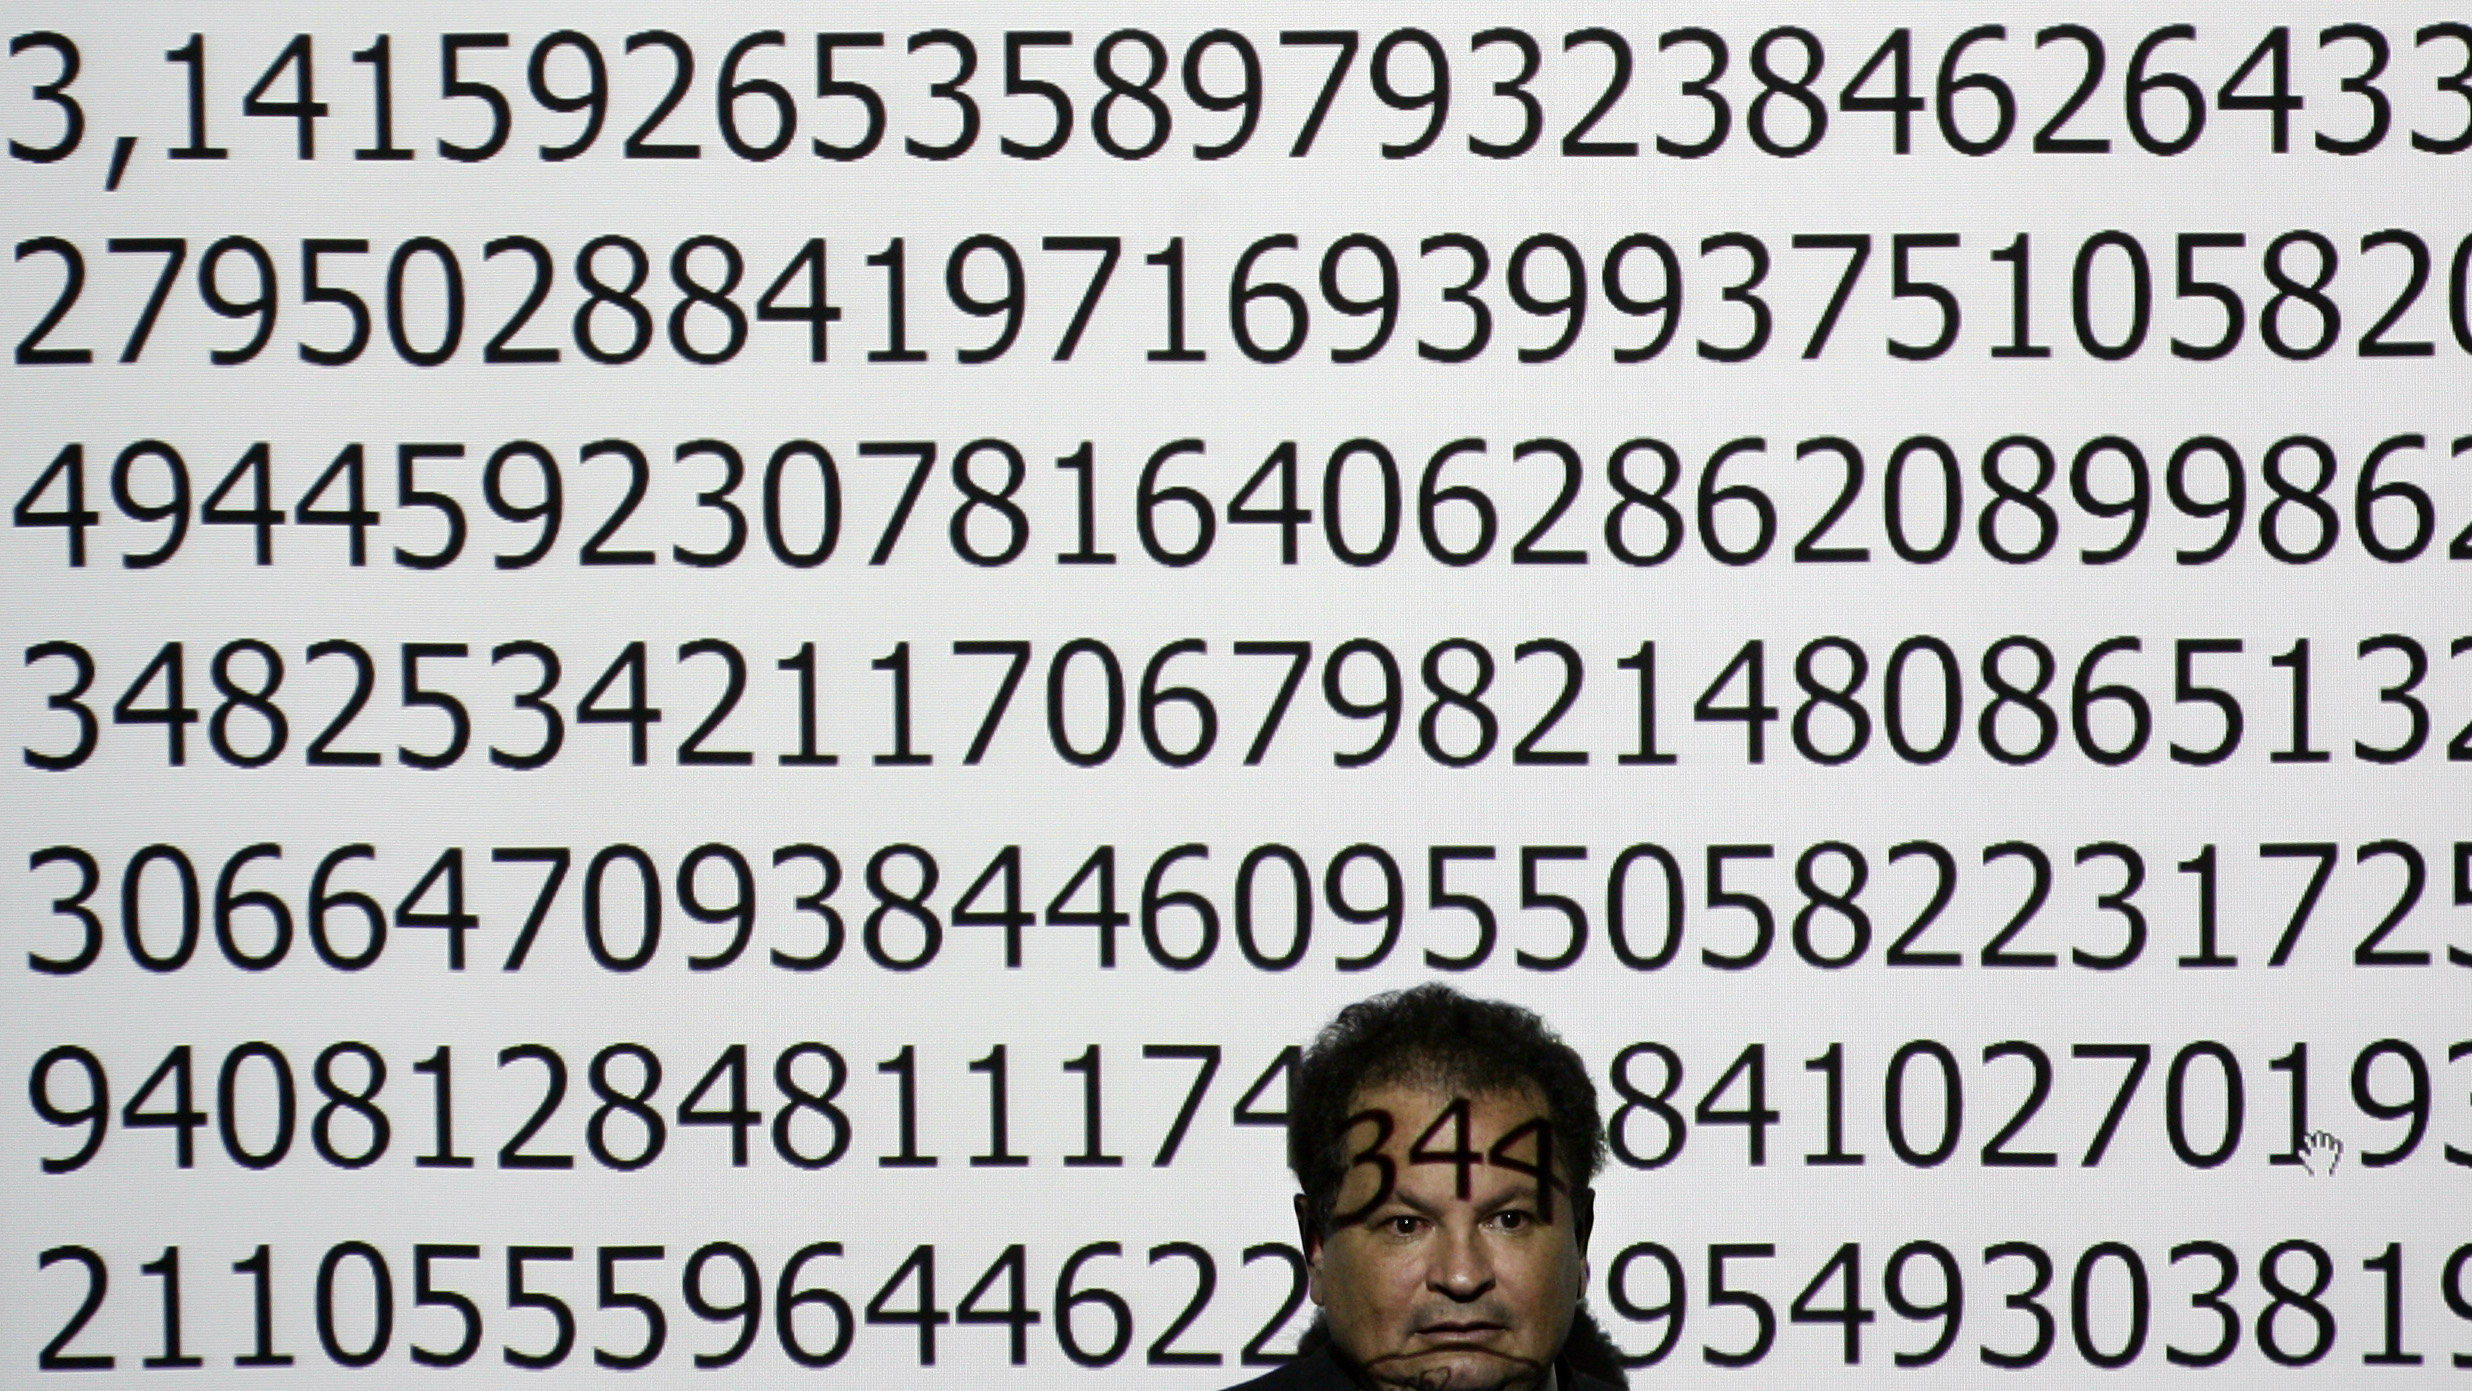 The history of why pi equals 3.14(15926…)